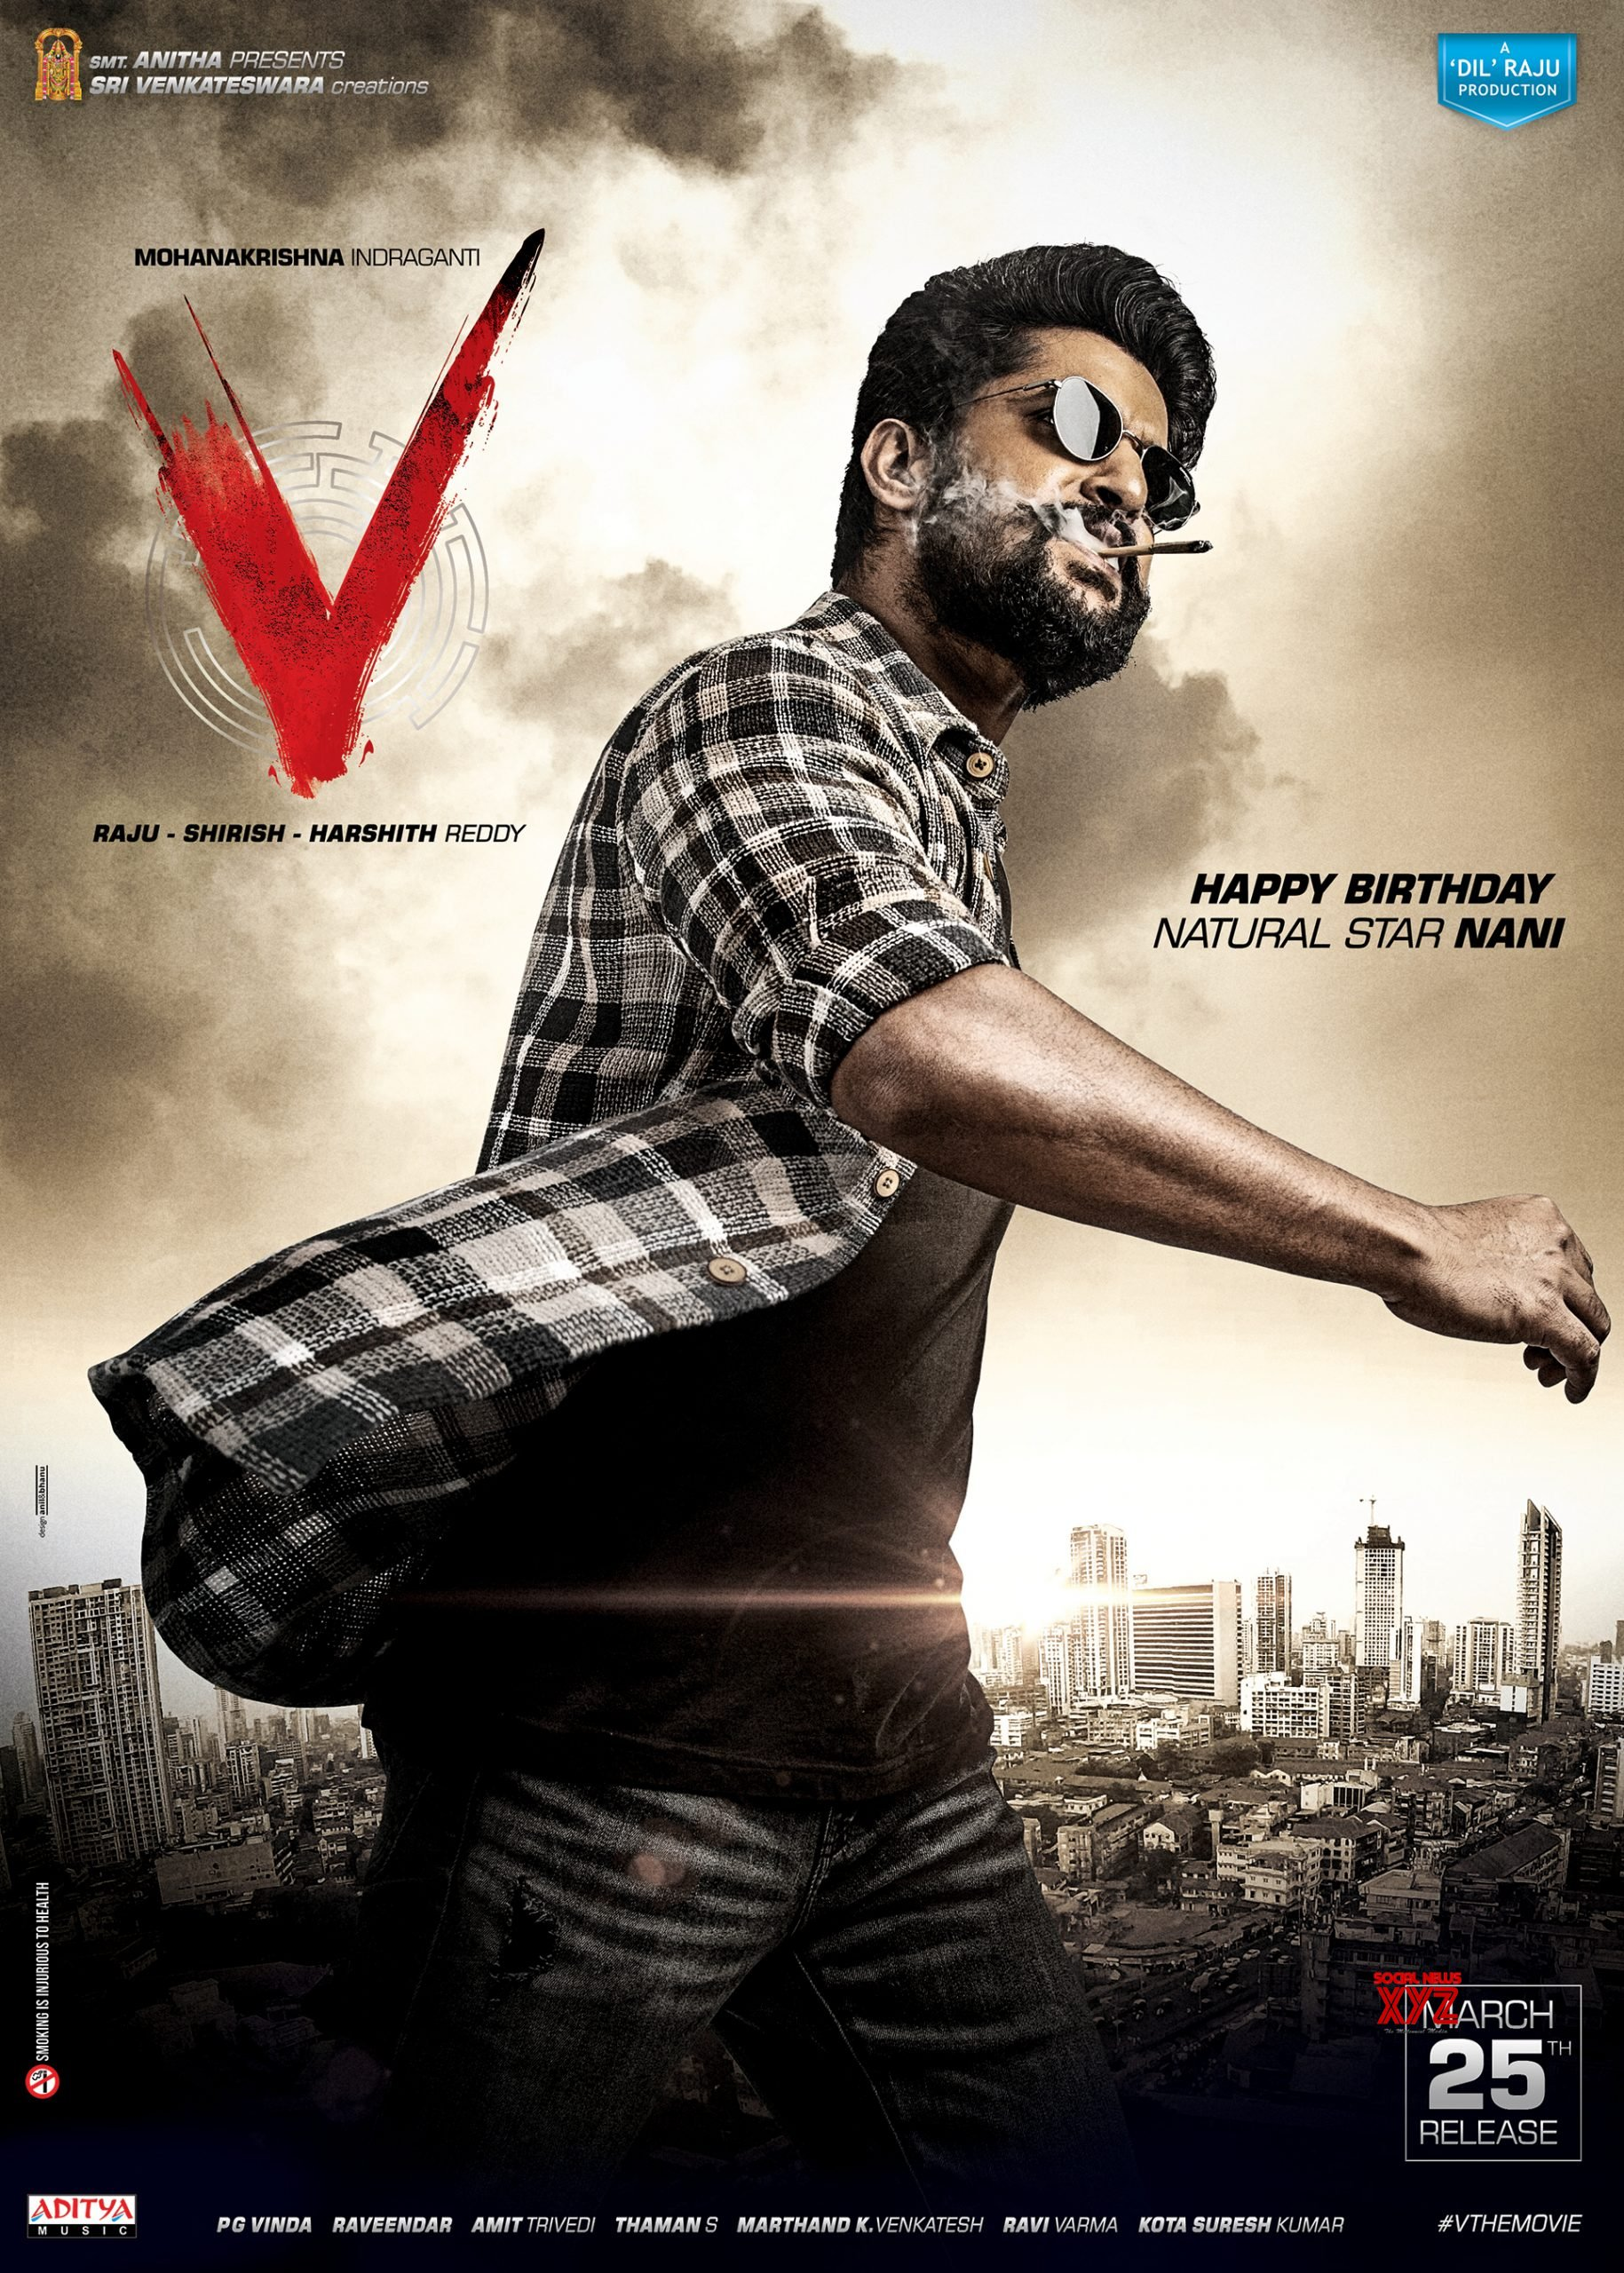 nani birthday hd poster and still from v movie social news xyz nani birthday hd poster and still from